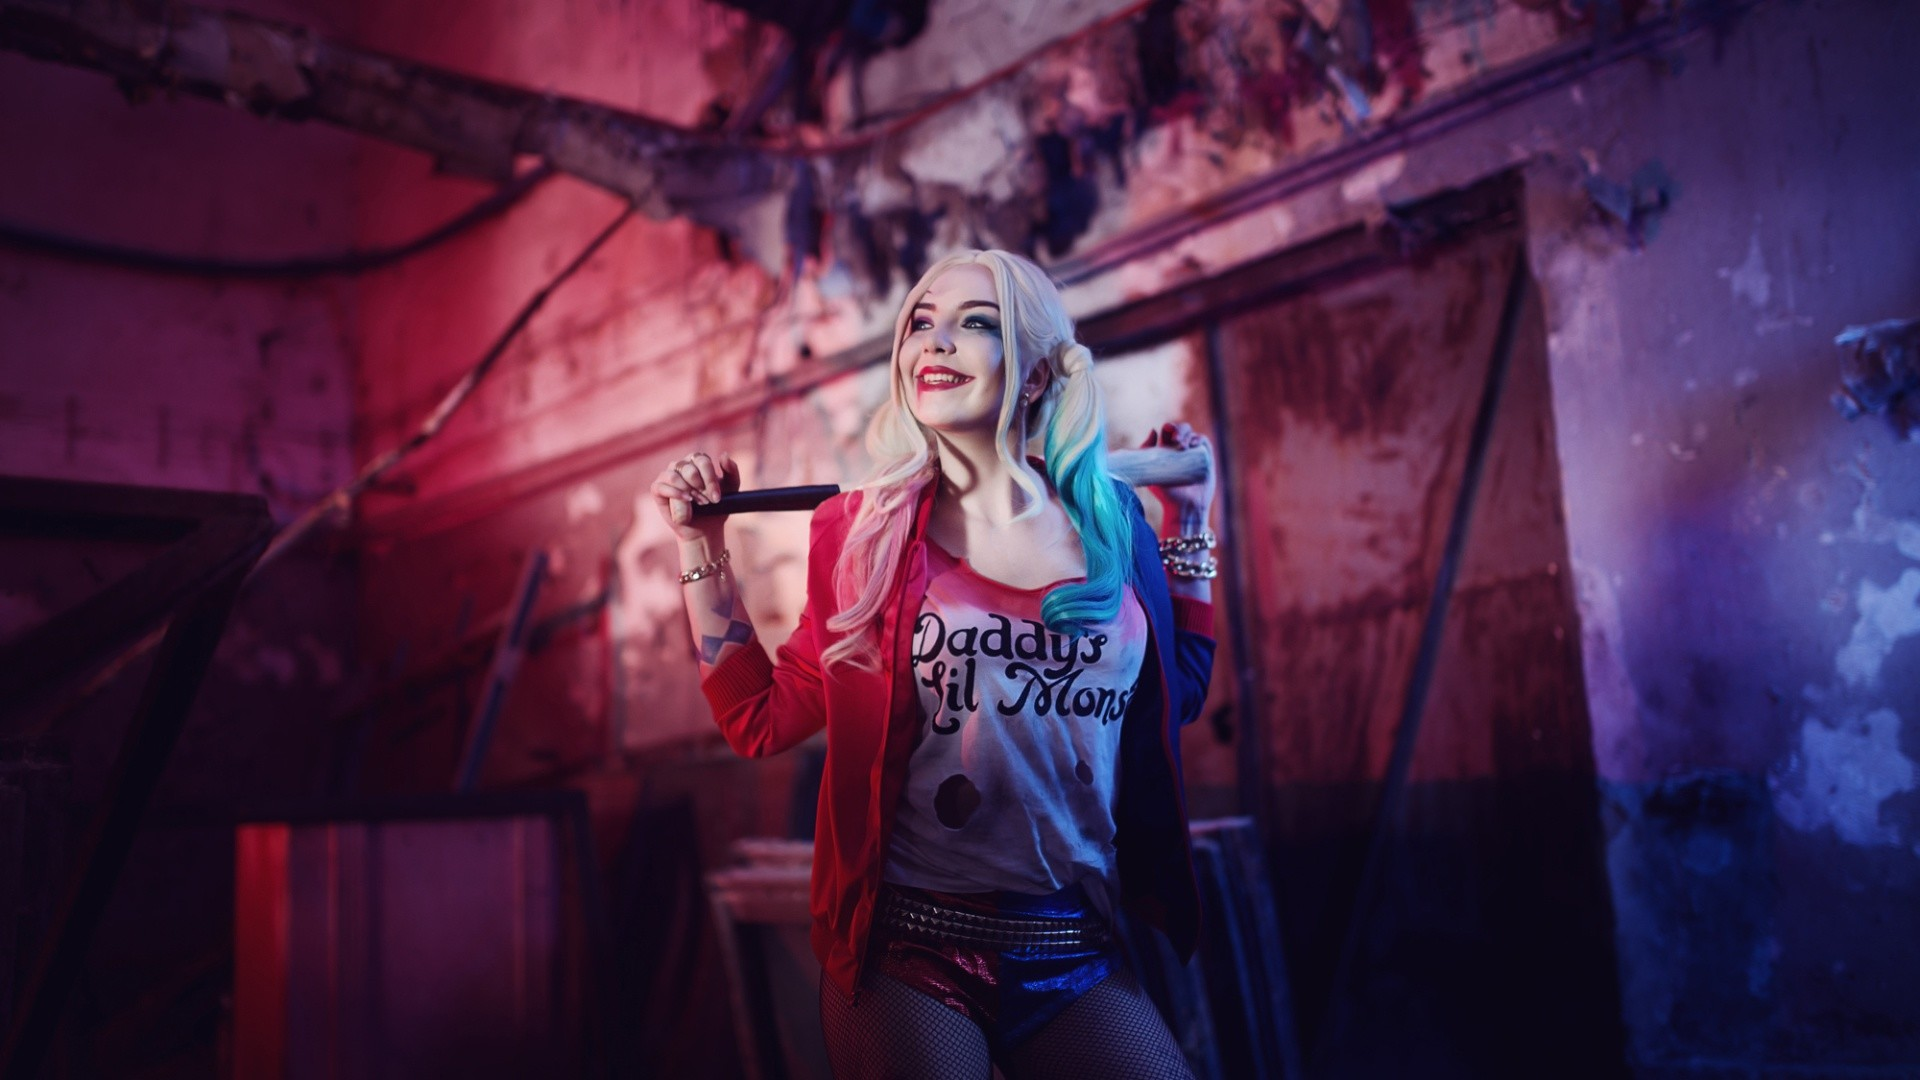 Harley Quinn 4k Hd Wallpapers: Harley Quinn Suicide Squad Wallpapers (72+ Images